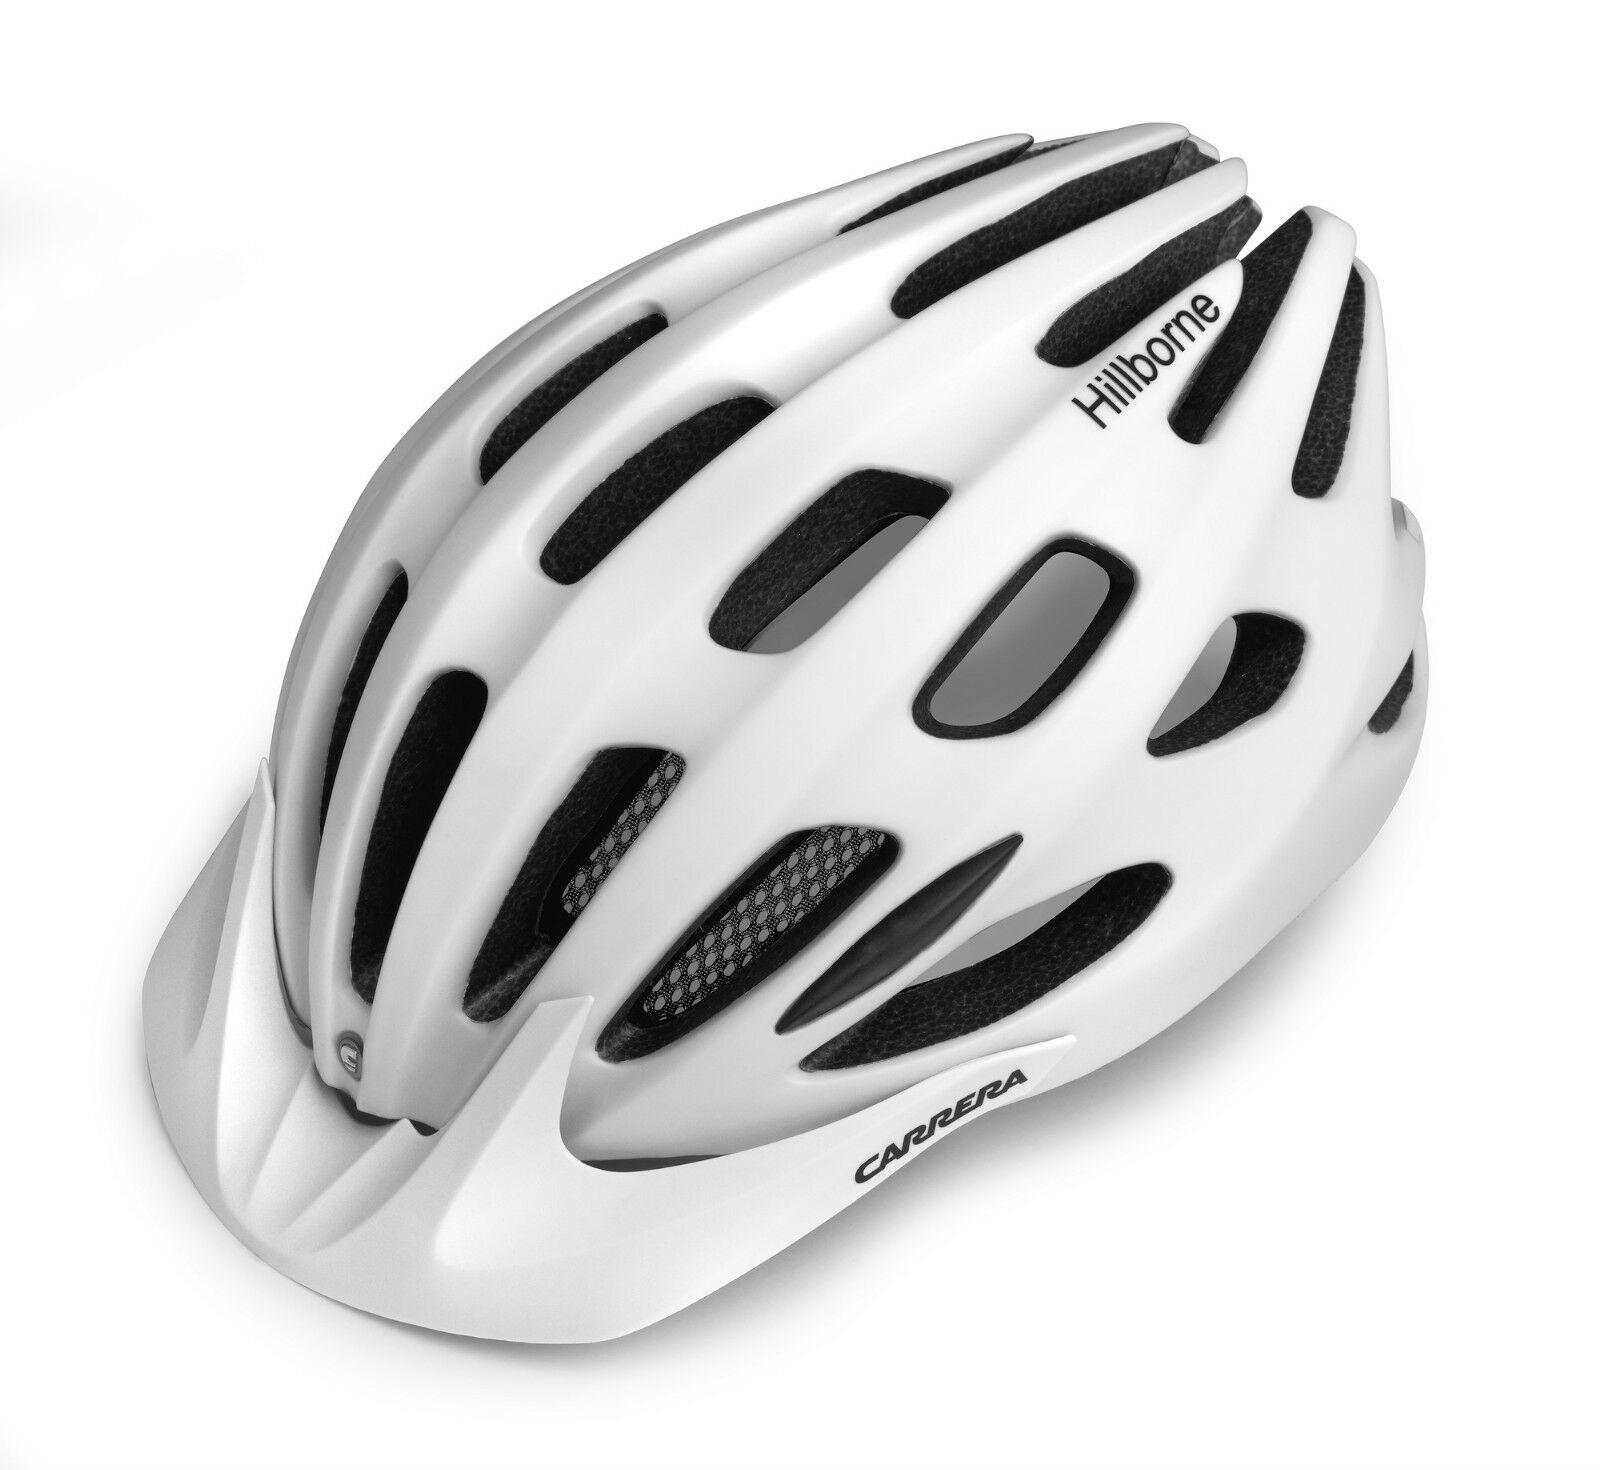 Carrera Hillborne MTB Freeride Cycle Bike Helmet S-M   L-XL Matte White BNIB